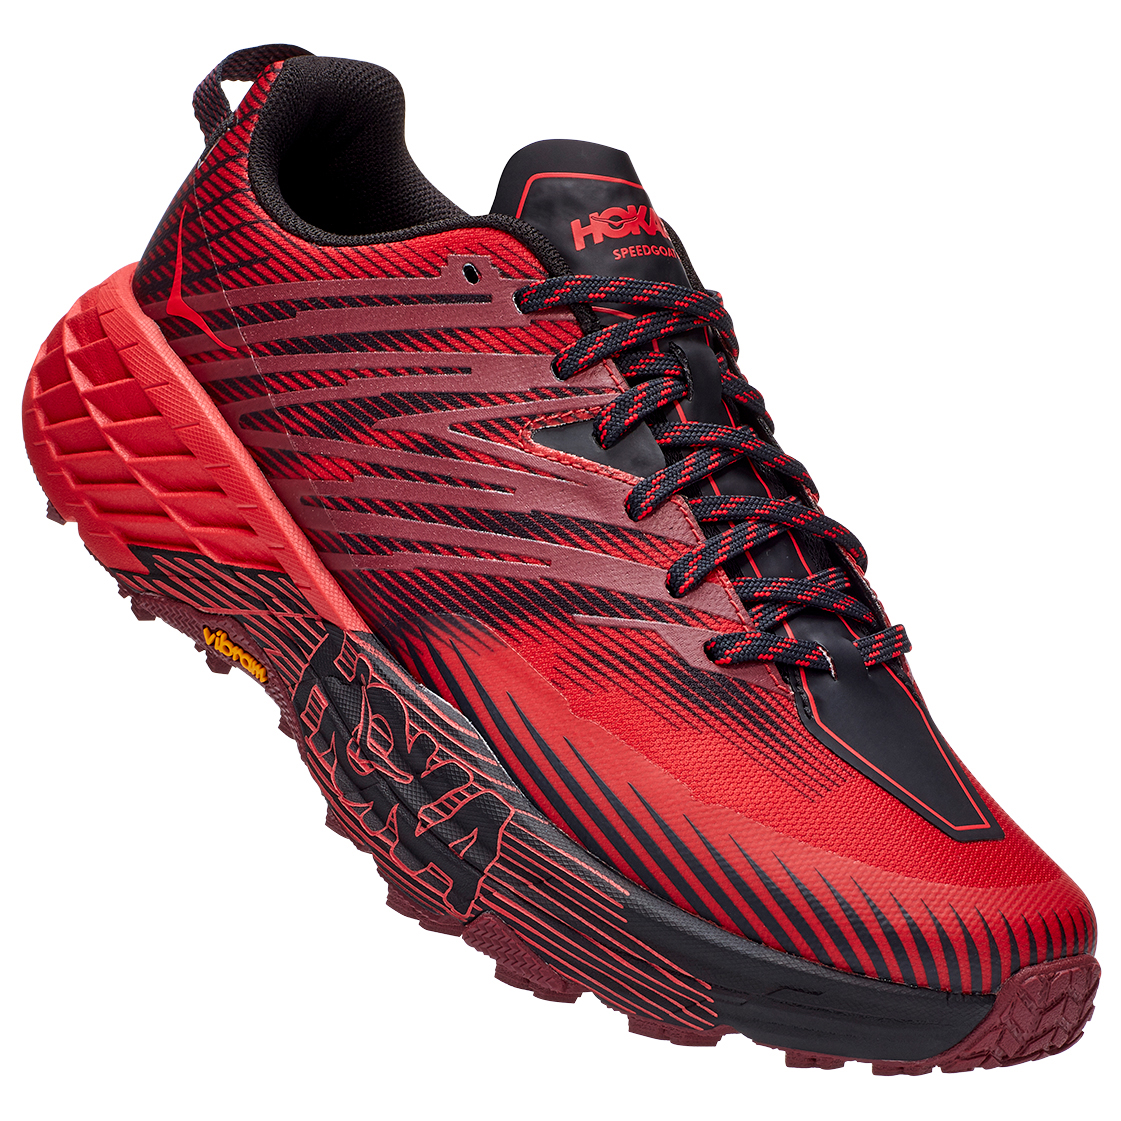 One Speedgoat 4 - Trail running shoes